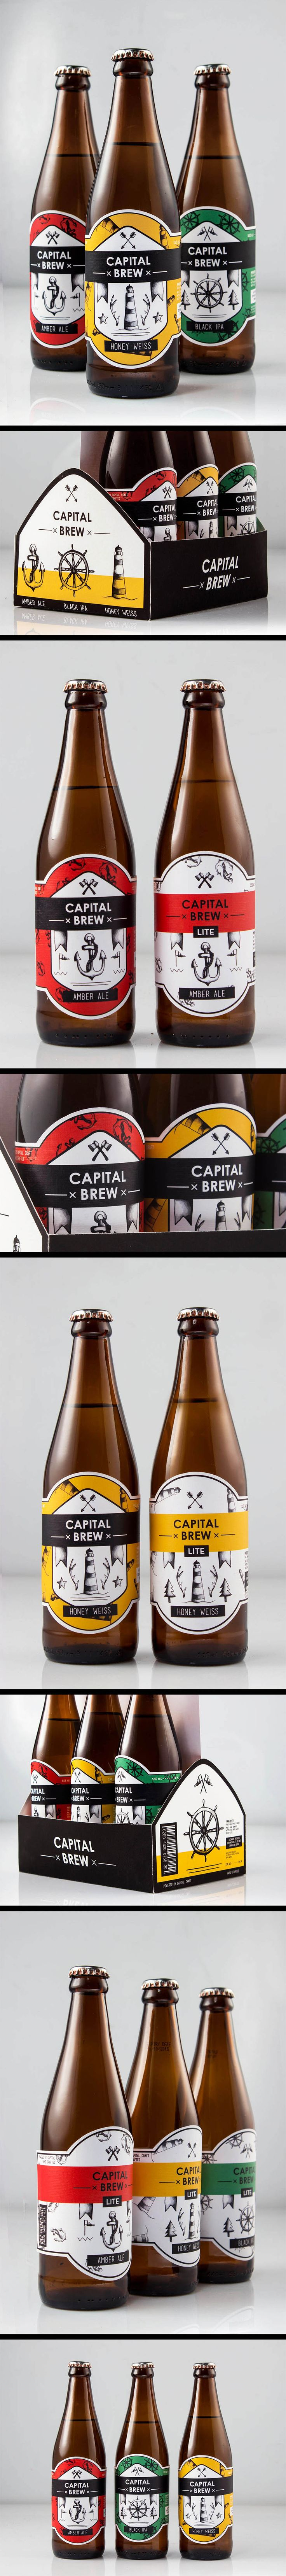 A student project that deals with #packaging and #branding for a #craft #beer #adventure #primary #colours #lbeerlabels #labels #icons #monochrome #lighthouse #anchor #patterns #bulk #packaging